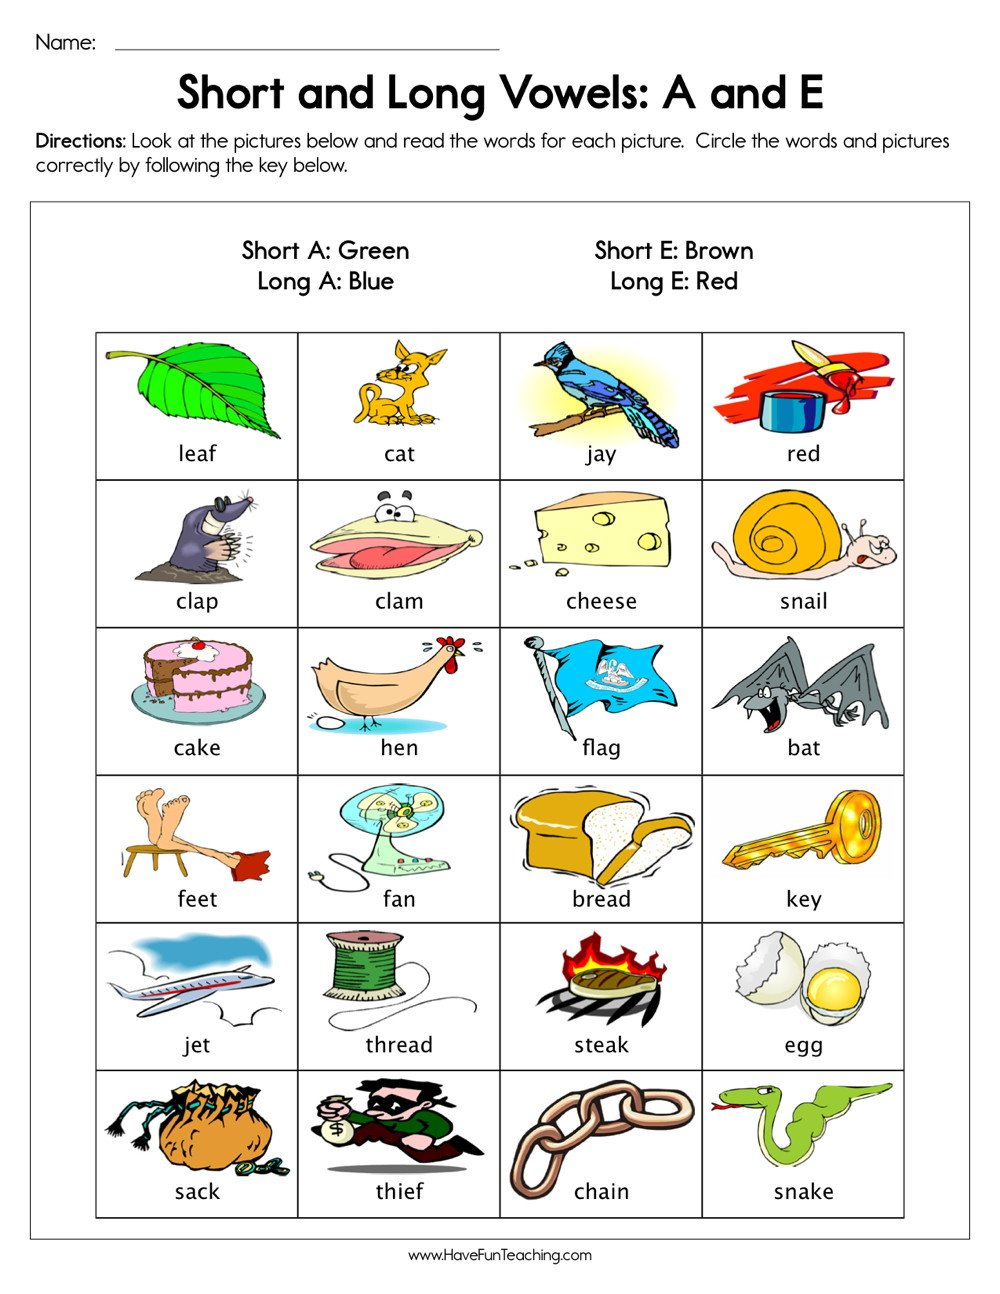 Short E Worksheets Free Short and Long Vowels A and E Worksheet